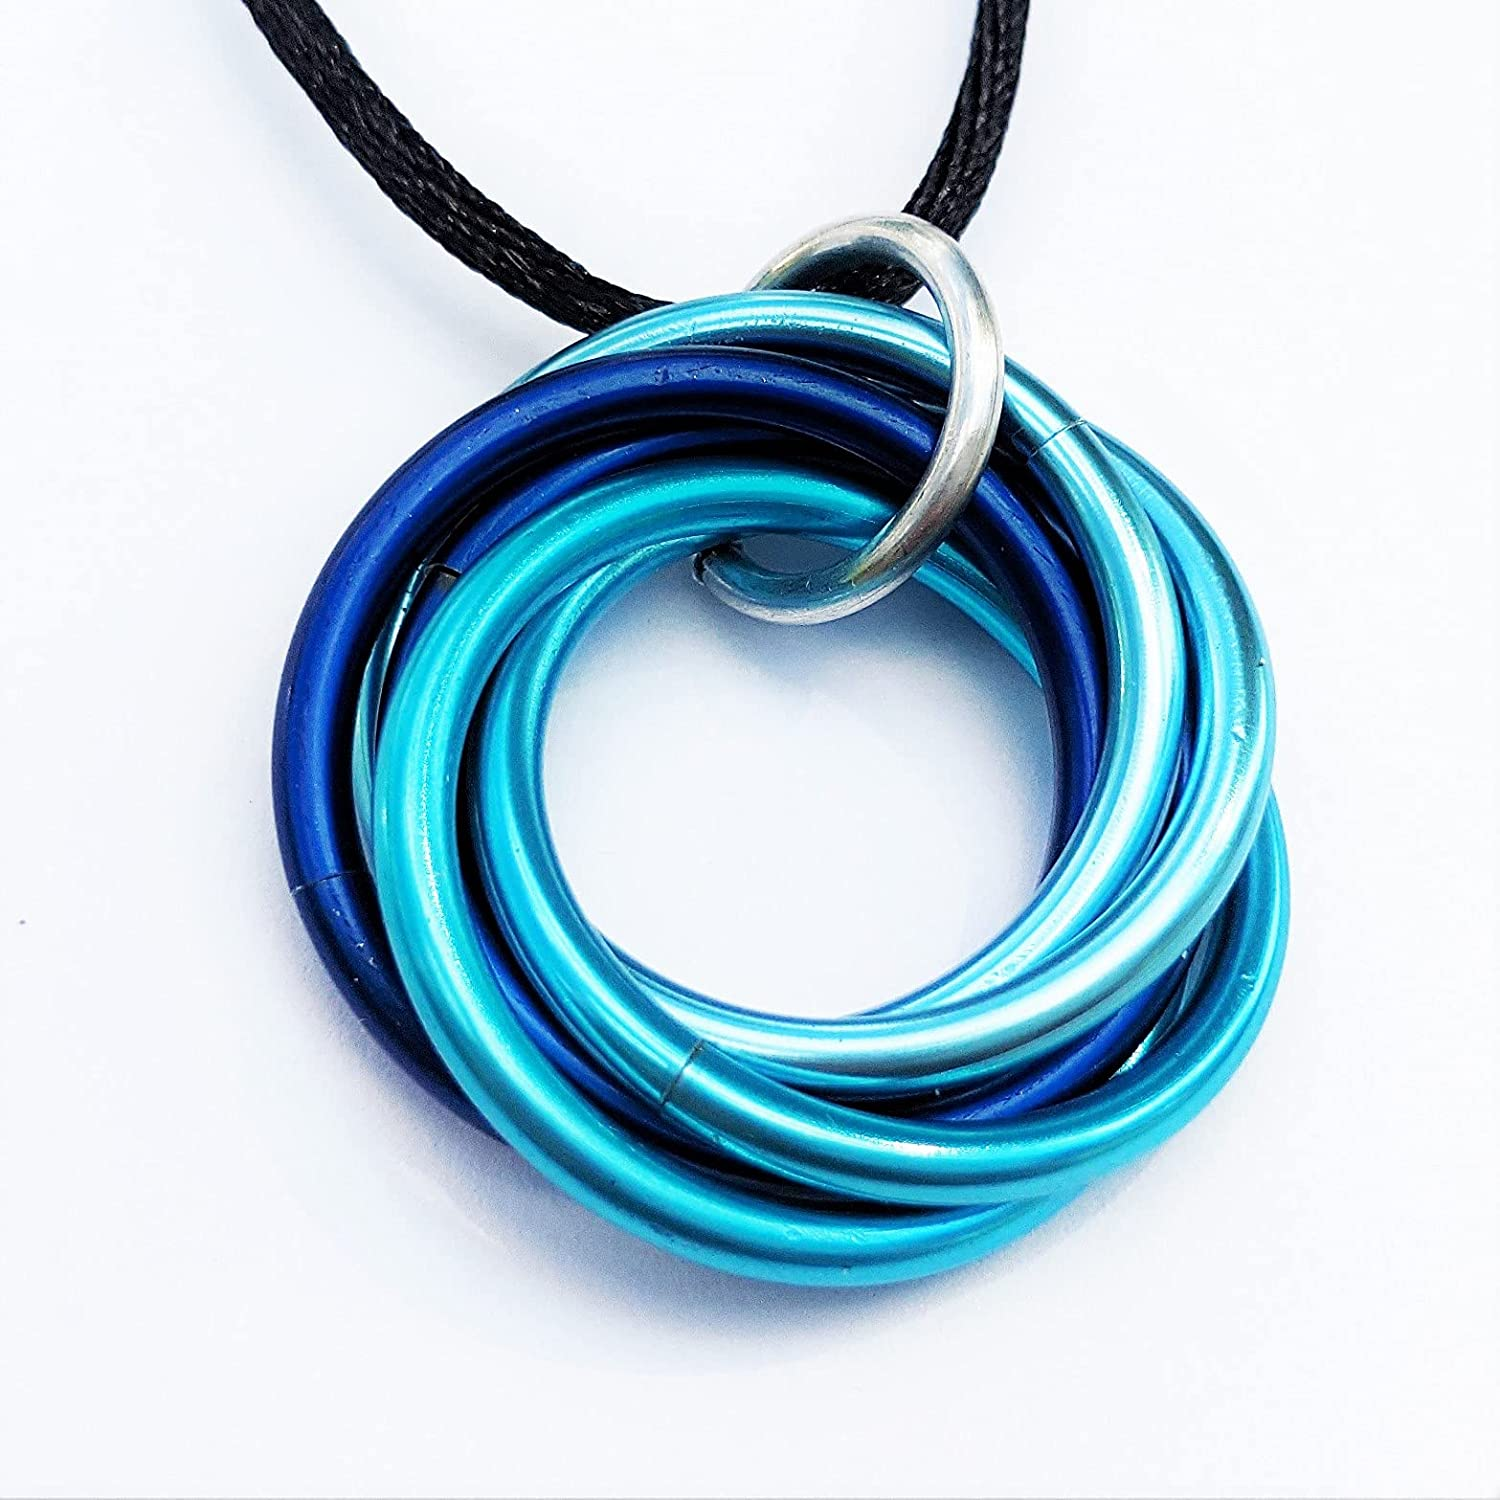 Mobii Necklace, Pendant (Medium), Multicolor Combos, Fidget Infinity Loop Forever Spiral Jewelry (Rainbow)